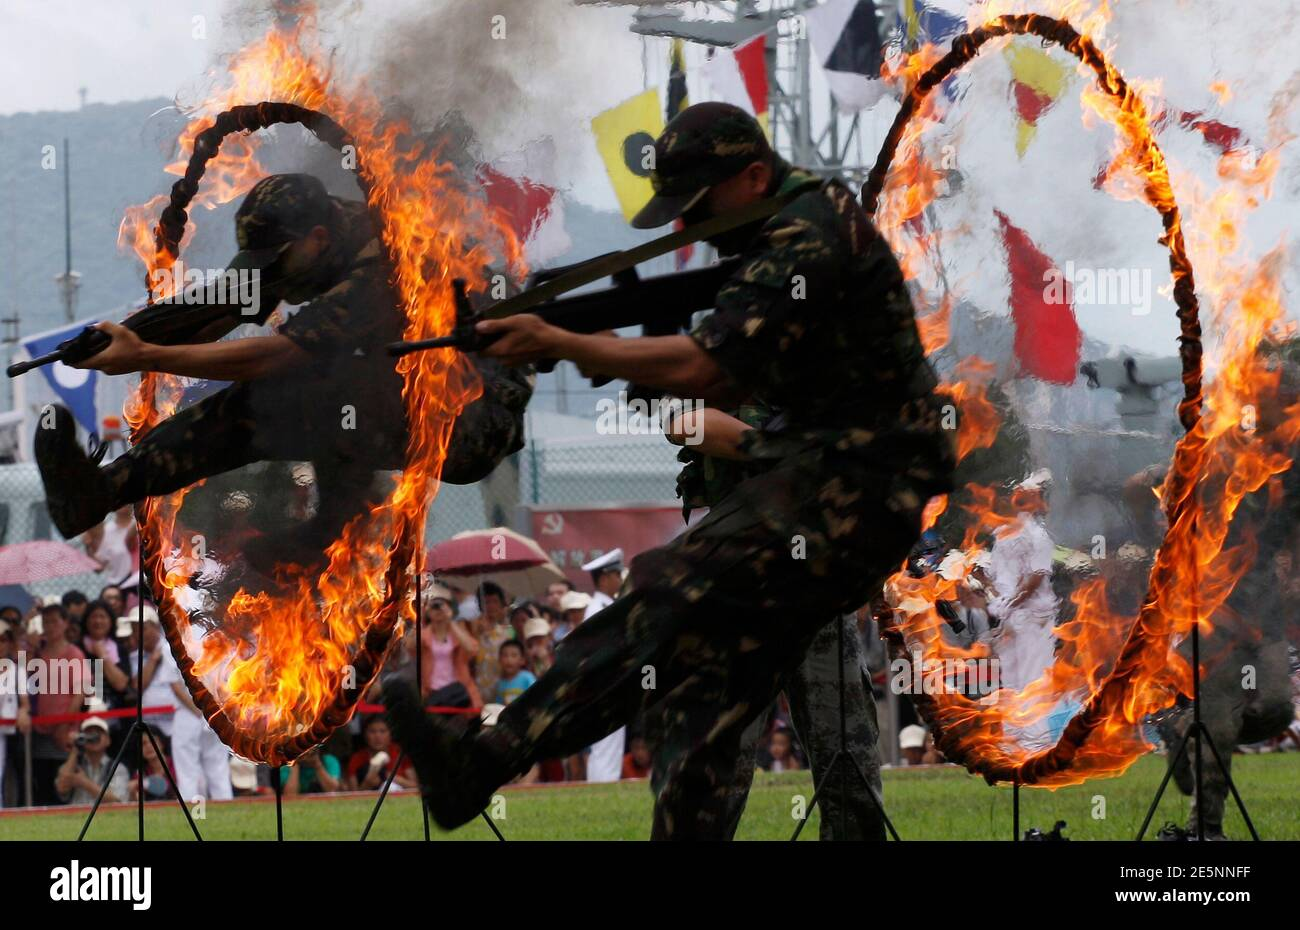 Chinese People's Liberation Army (PLA) soldiers jump through rings of fire in a war game as part of the show for the public during an open day at the Ngong Shuen Chau Naval Base on Hong Kong's Stonecutters Island July 28, 2012. The naval base was open to the public on Saturday, four days ahead of the PLA Army Day on August 1. REUTERS/Tyrone Siu (CHINA - Tags: POLITICS MILITARY) Stock Photo